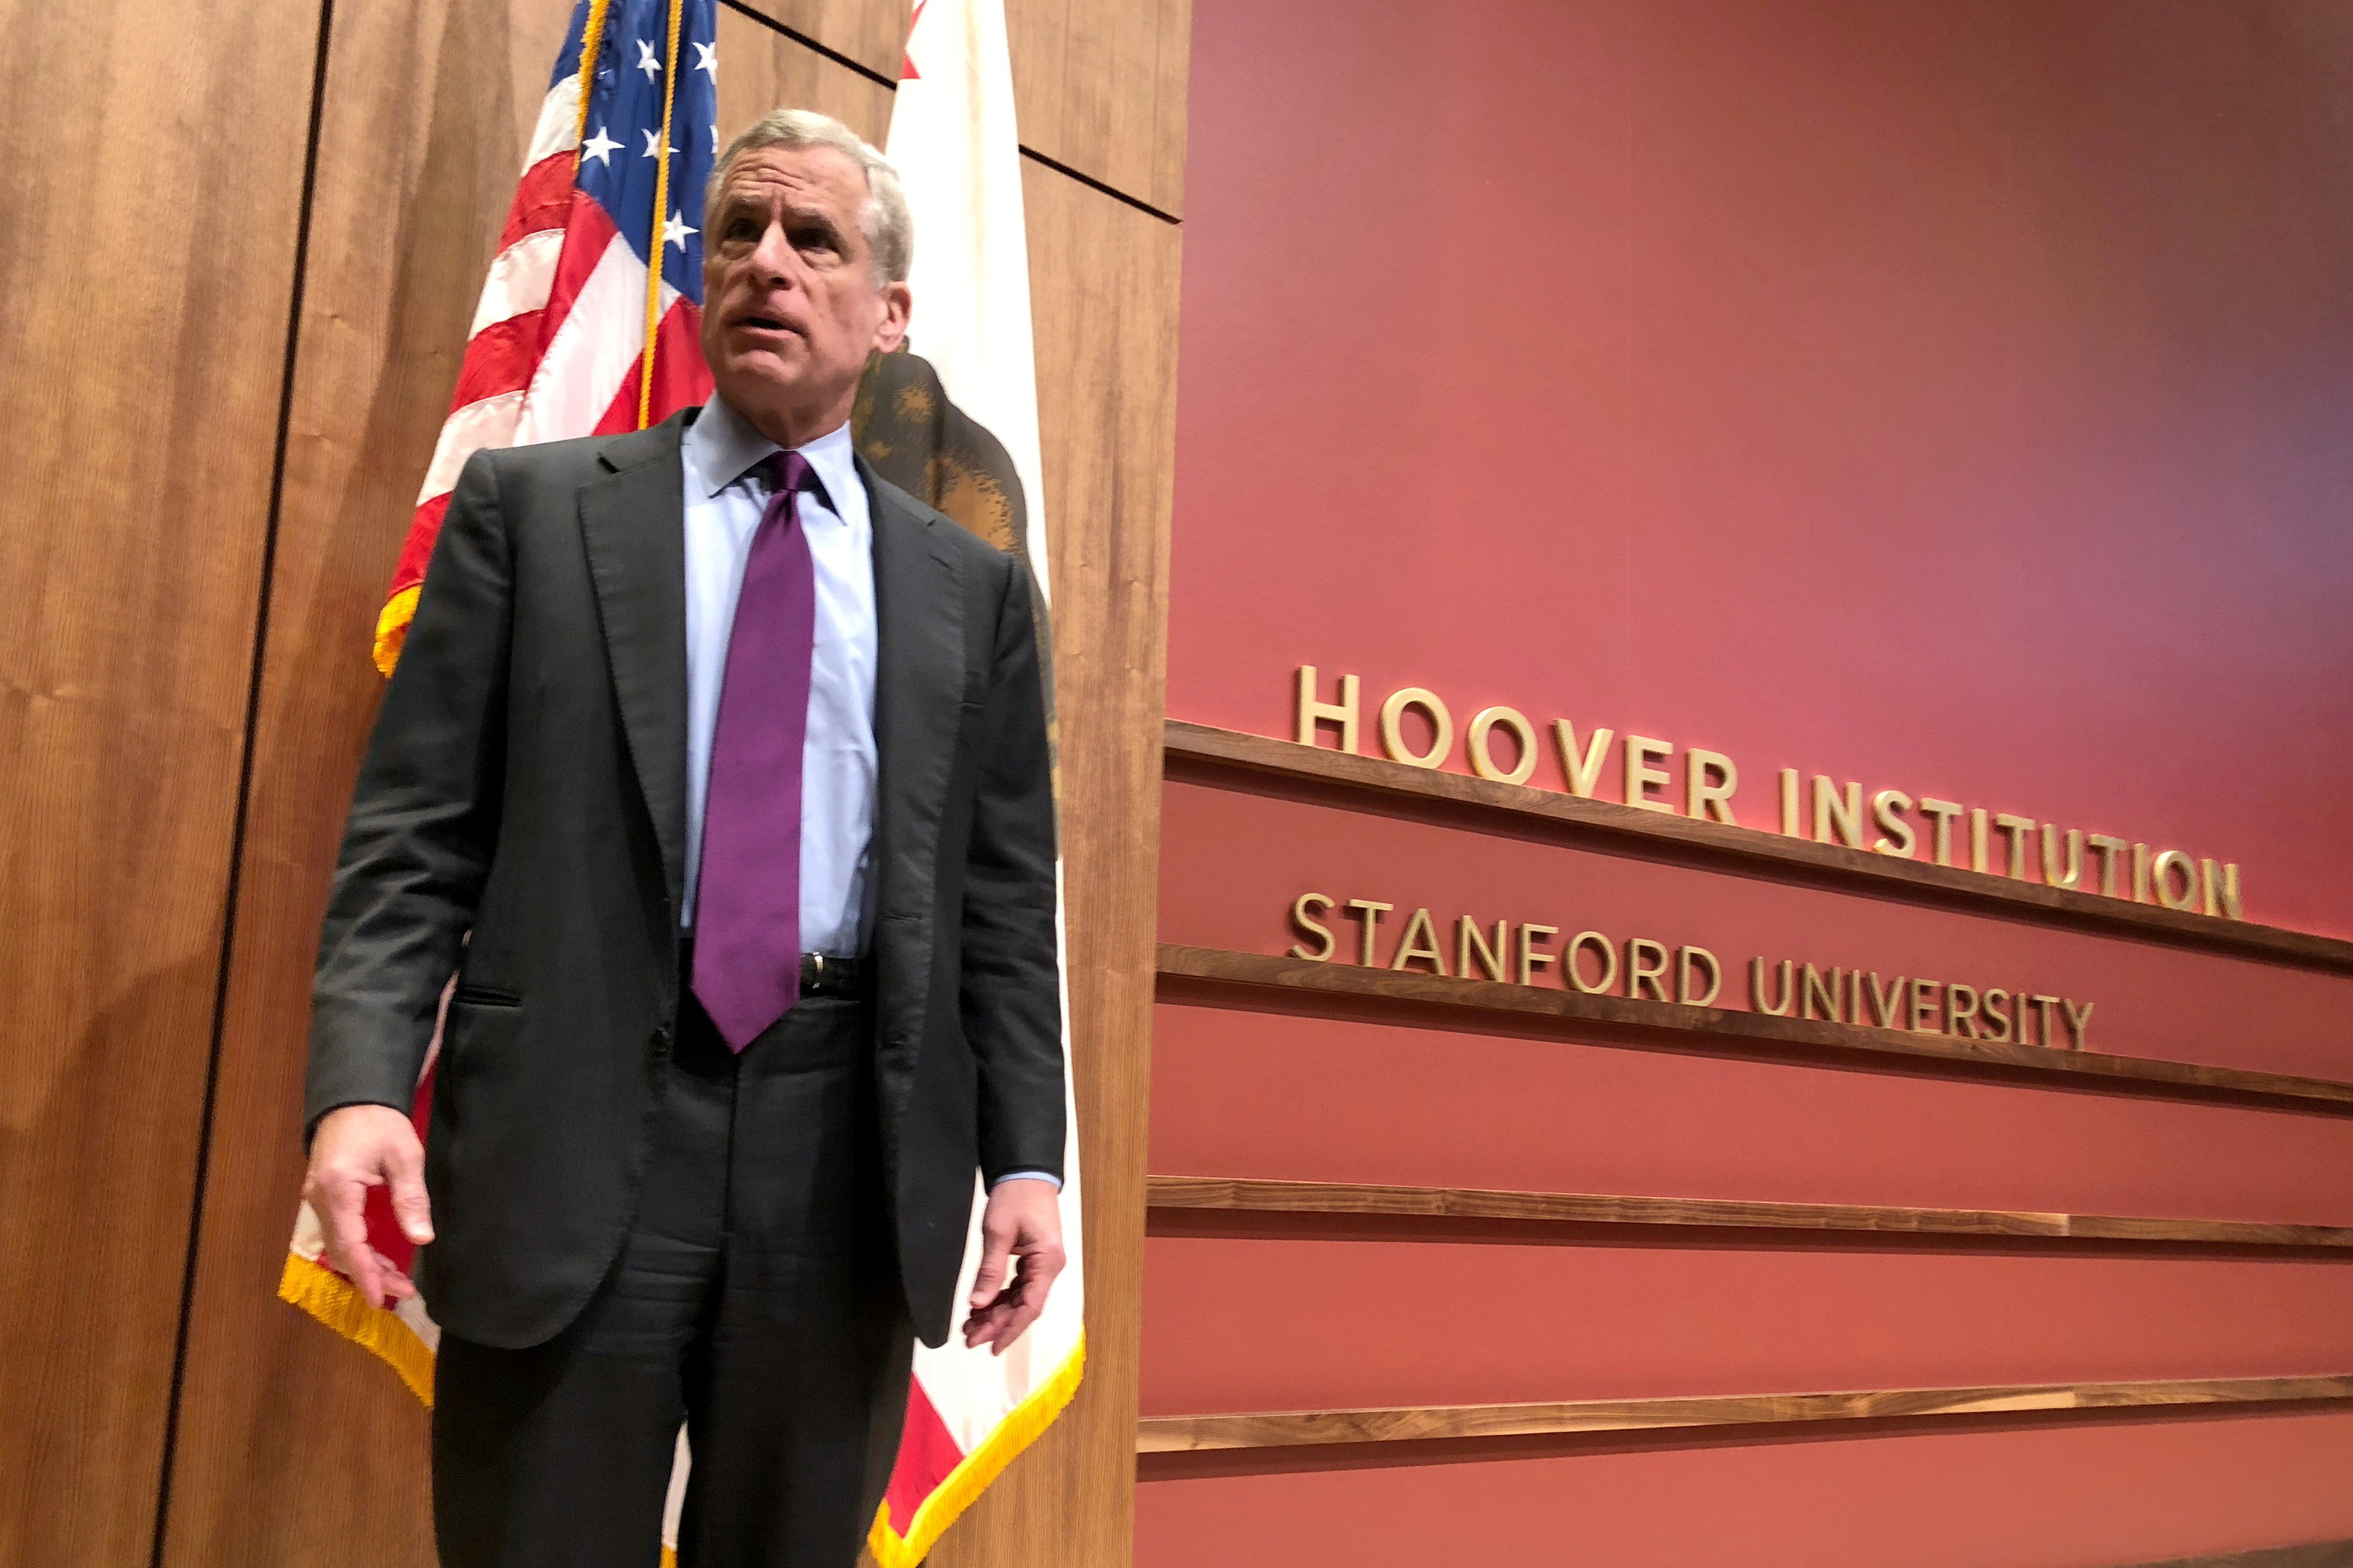 Dallas Federal Reserve Bank President Robert Kaplan stands on a stage at Stanford University's Hoover Institution where he was attending an annual monetary policy conference in Stanford, California, U.S., May 4, 2018. REUTERS/Ann Saphir